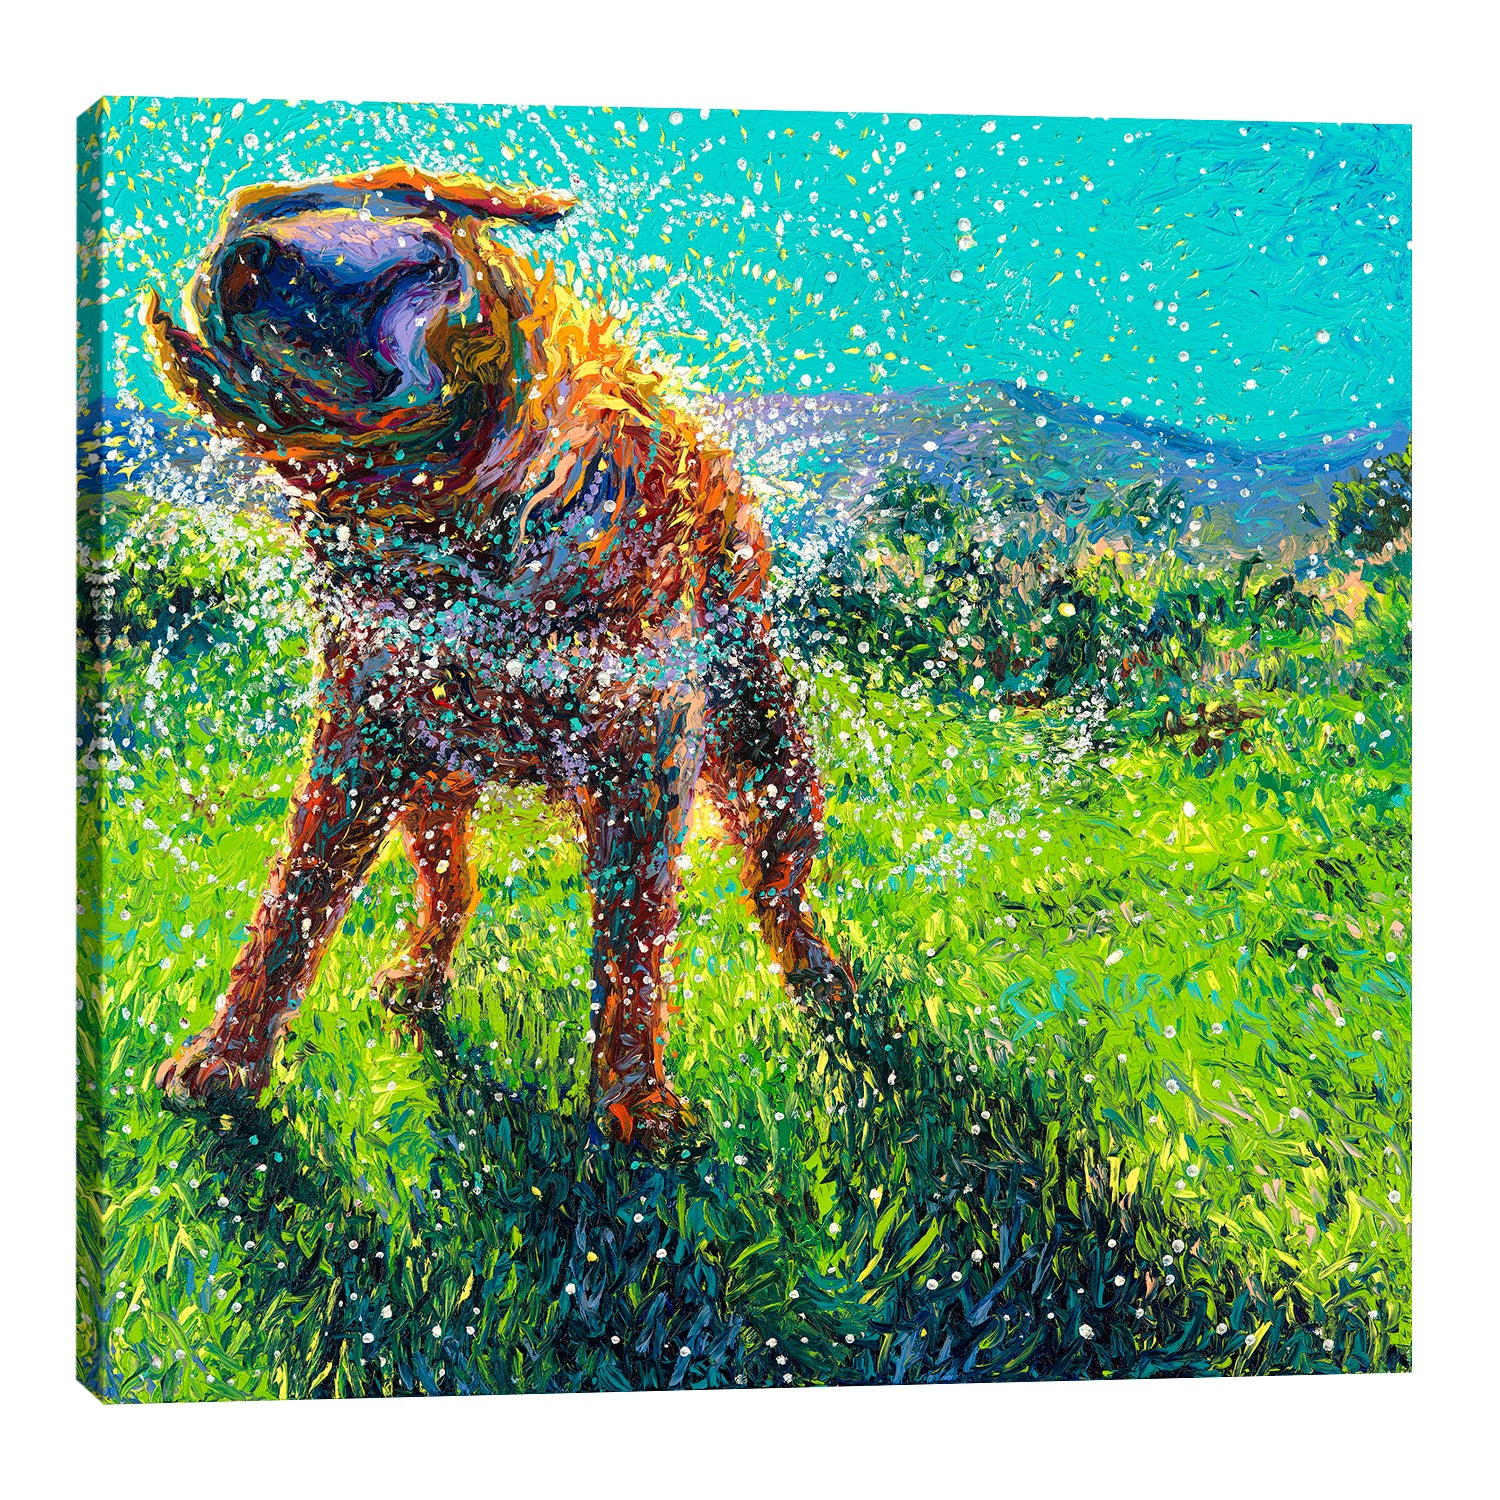 Iris-Scott,Modern & Contemporary,Animals,animals,animal,dogs,dog,wagging,shaking,water drops,grasses,mountains,